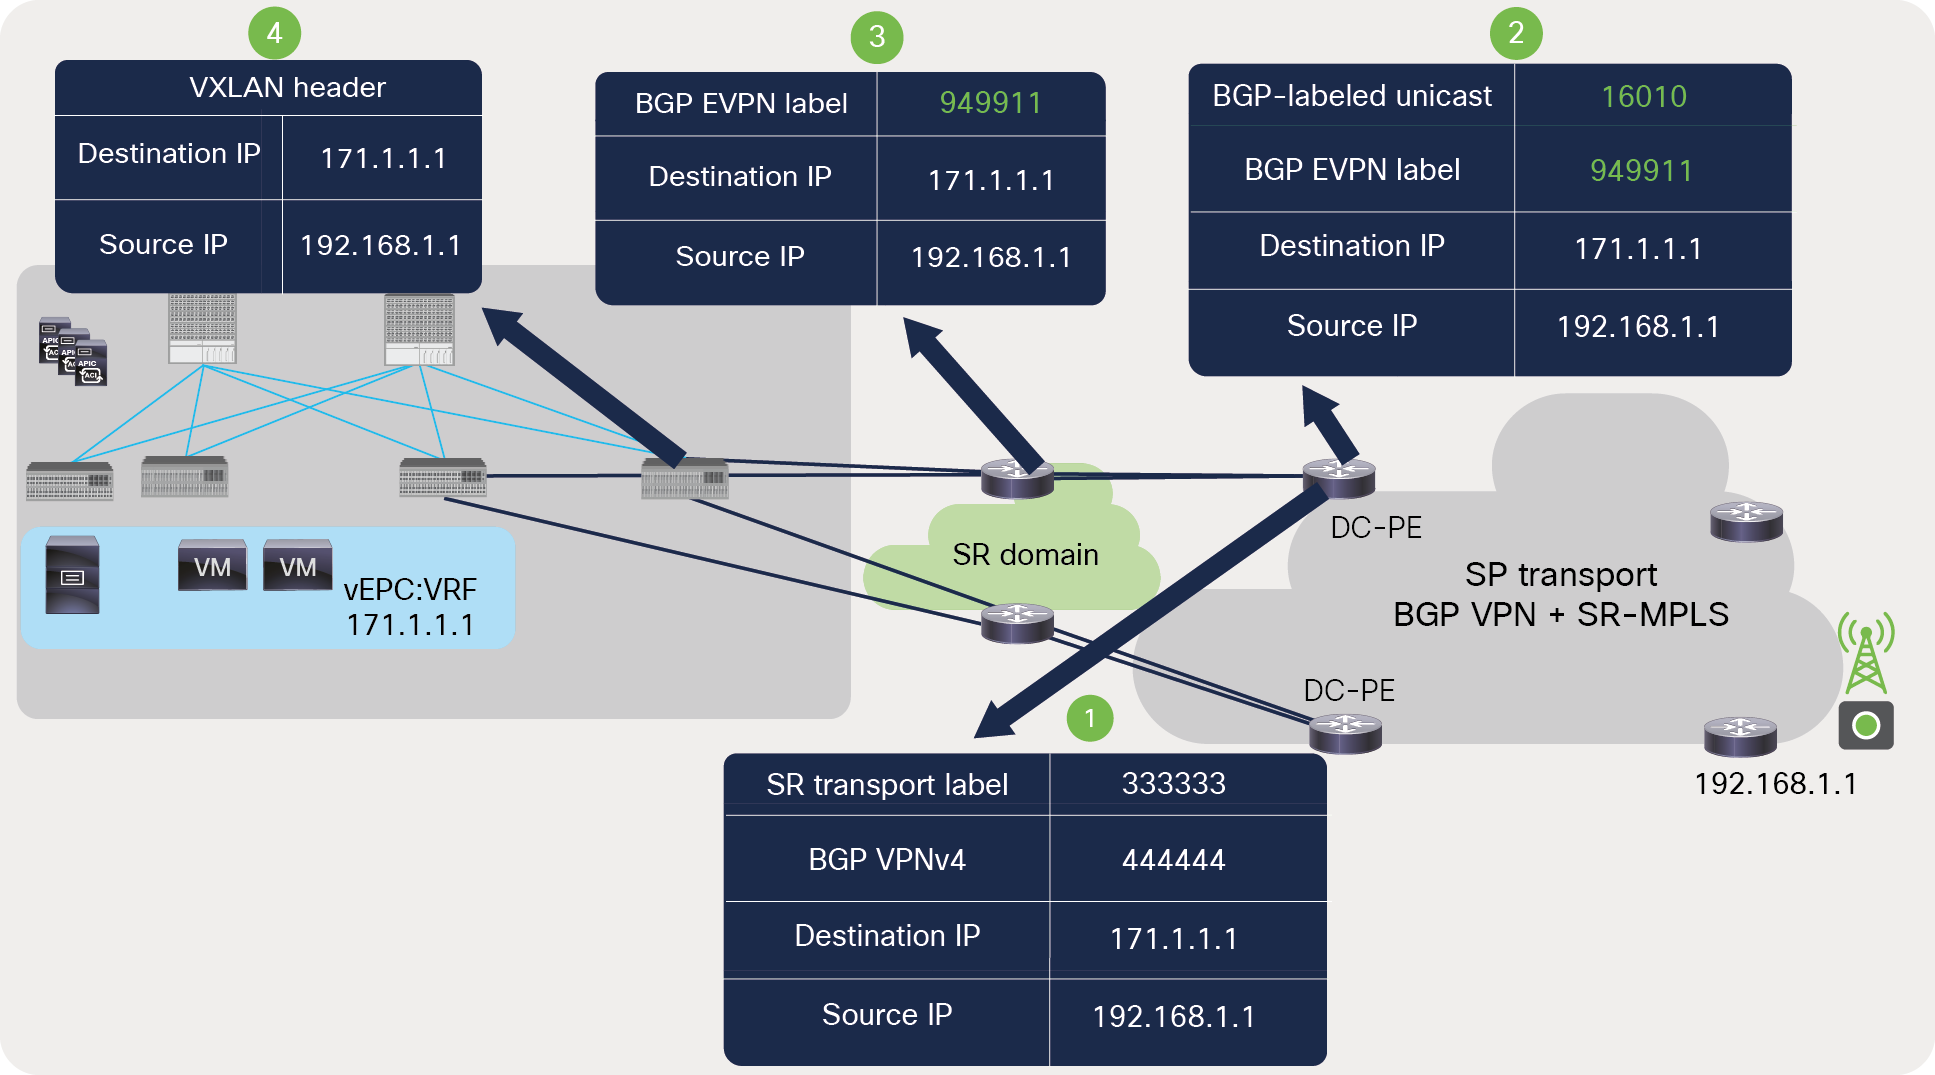 Packet walk from DC-PE to ACI fabric across SR-MPLS network